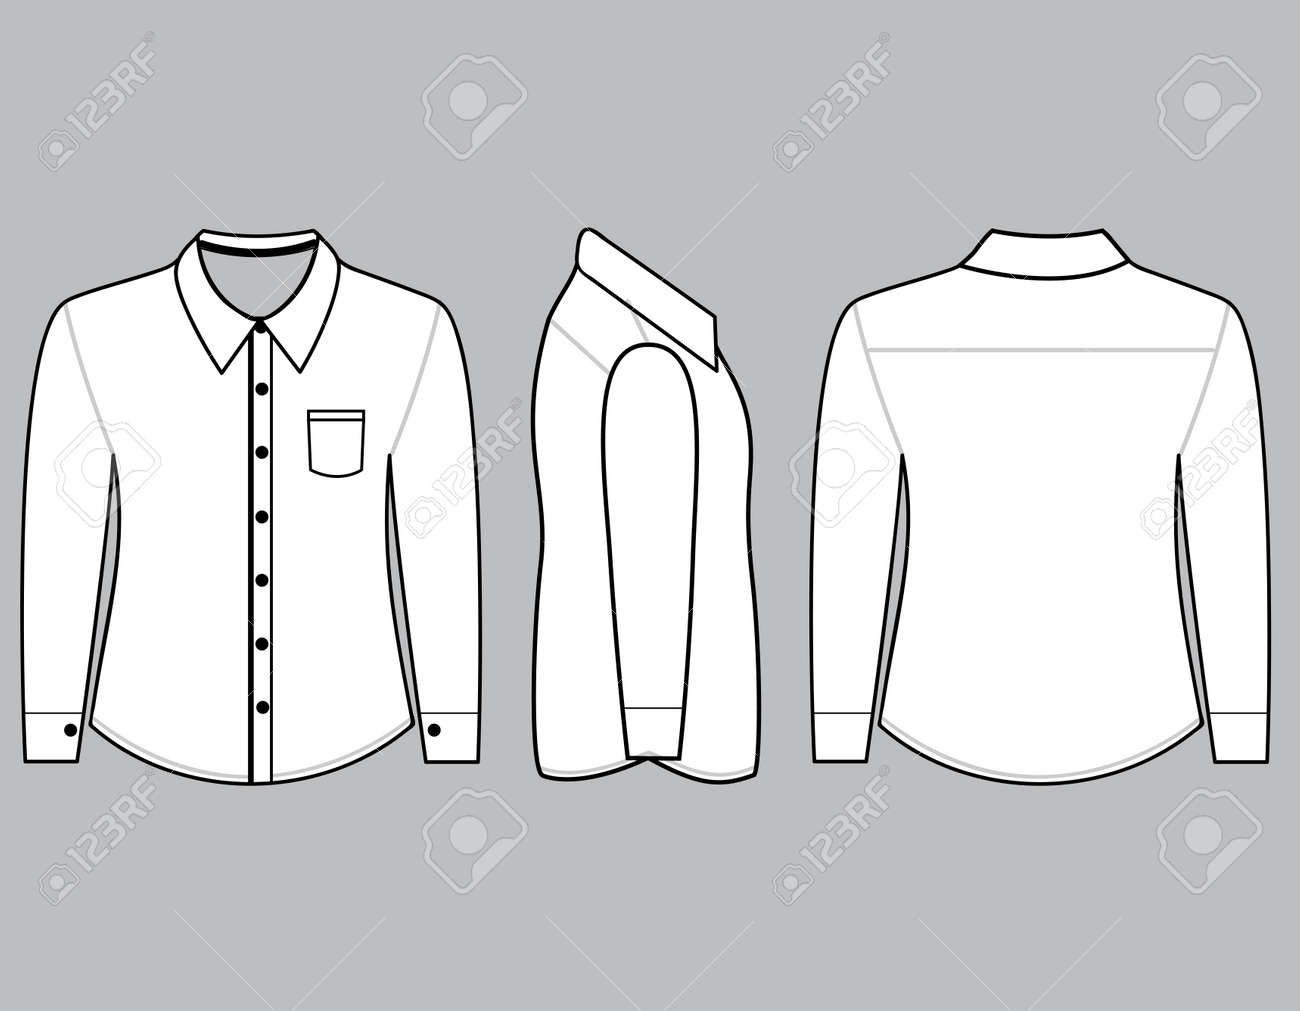 Blank Shirt With Long Sleeves Template For Men Frontback And Side Views